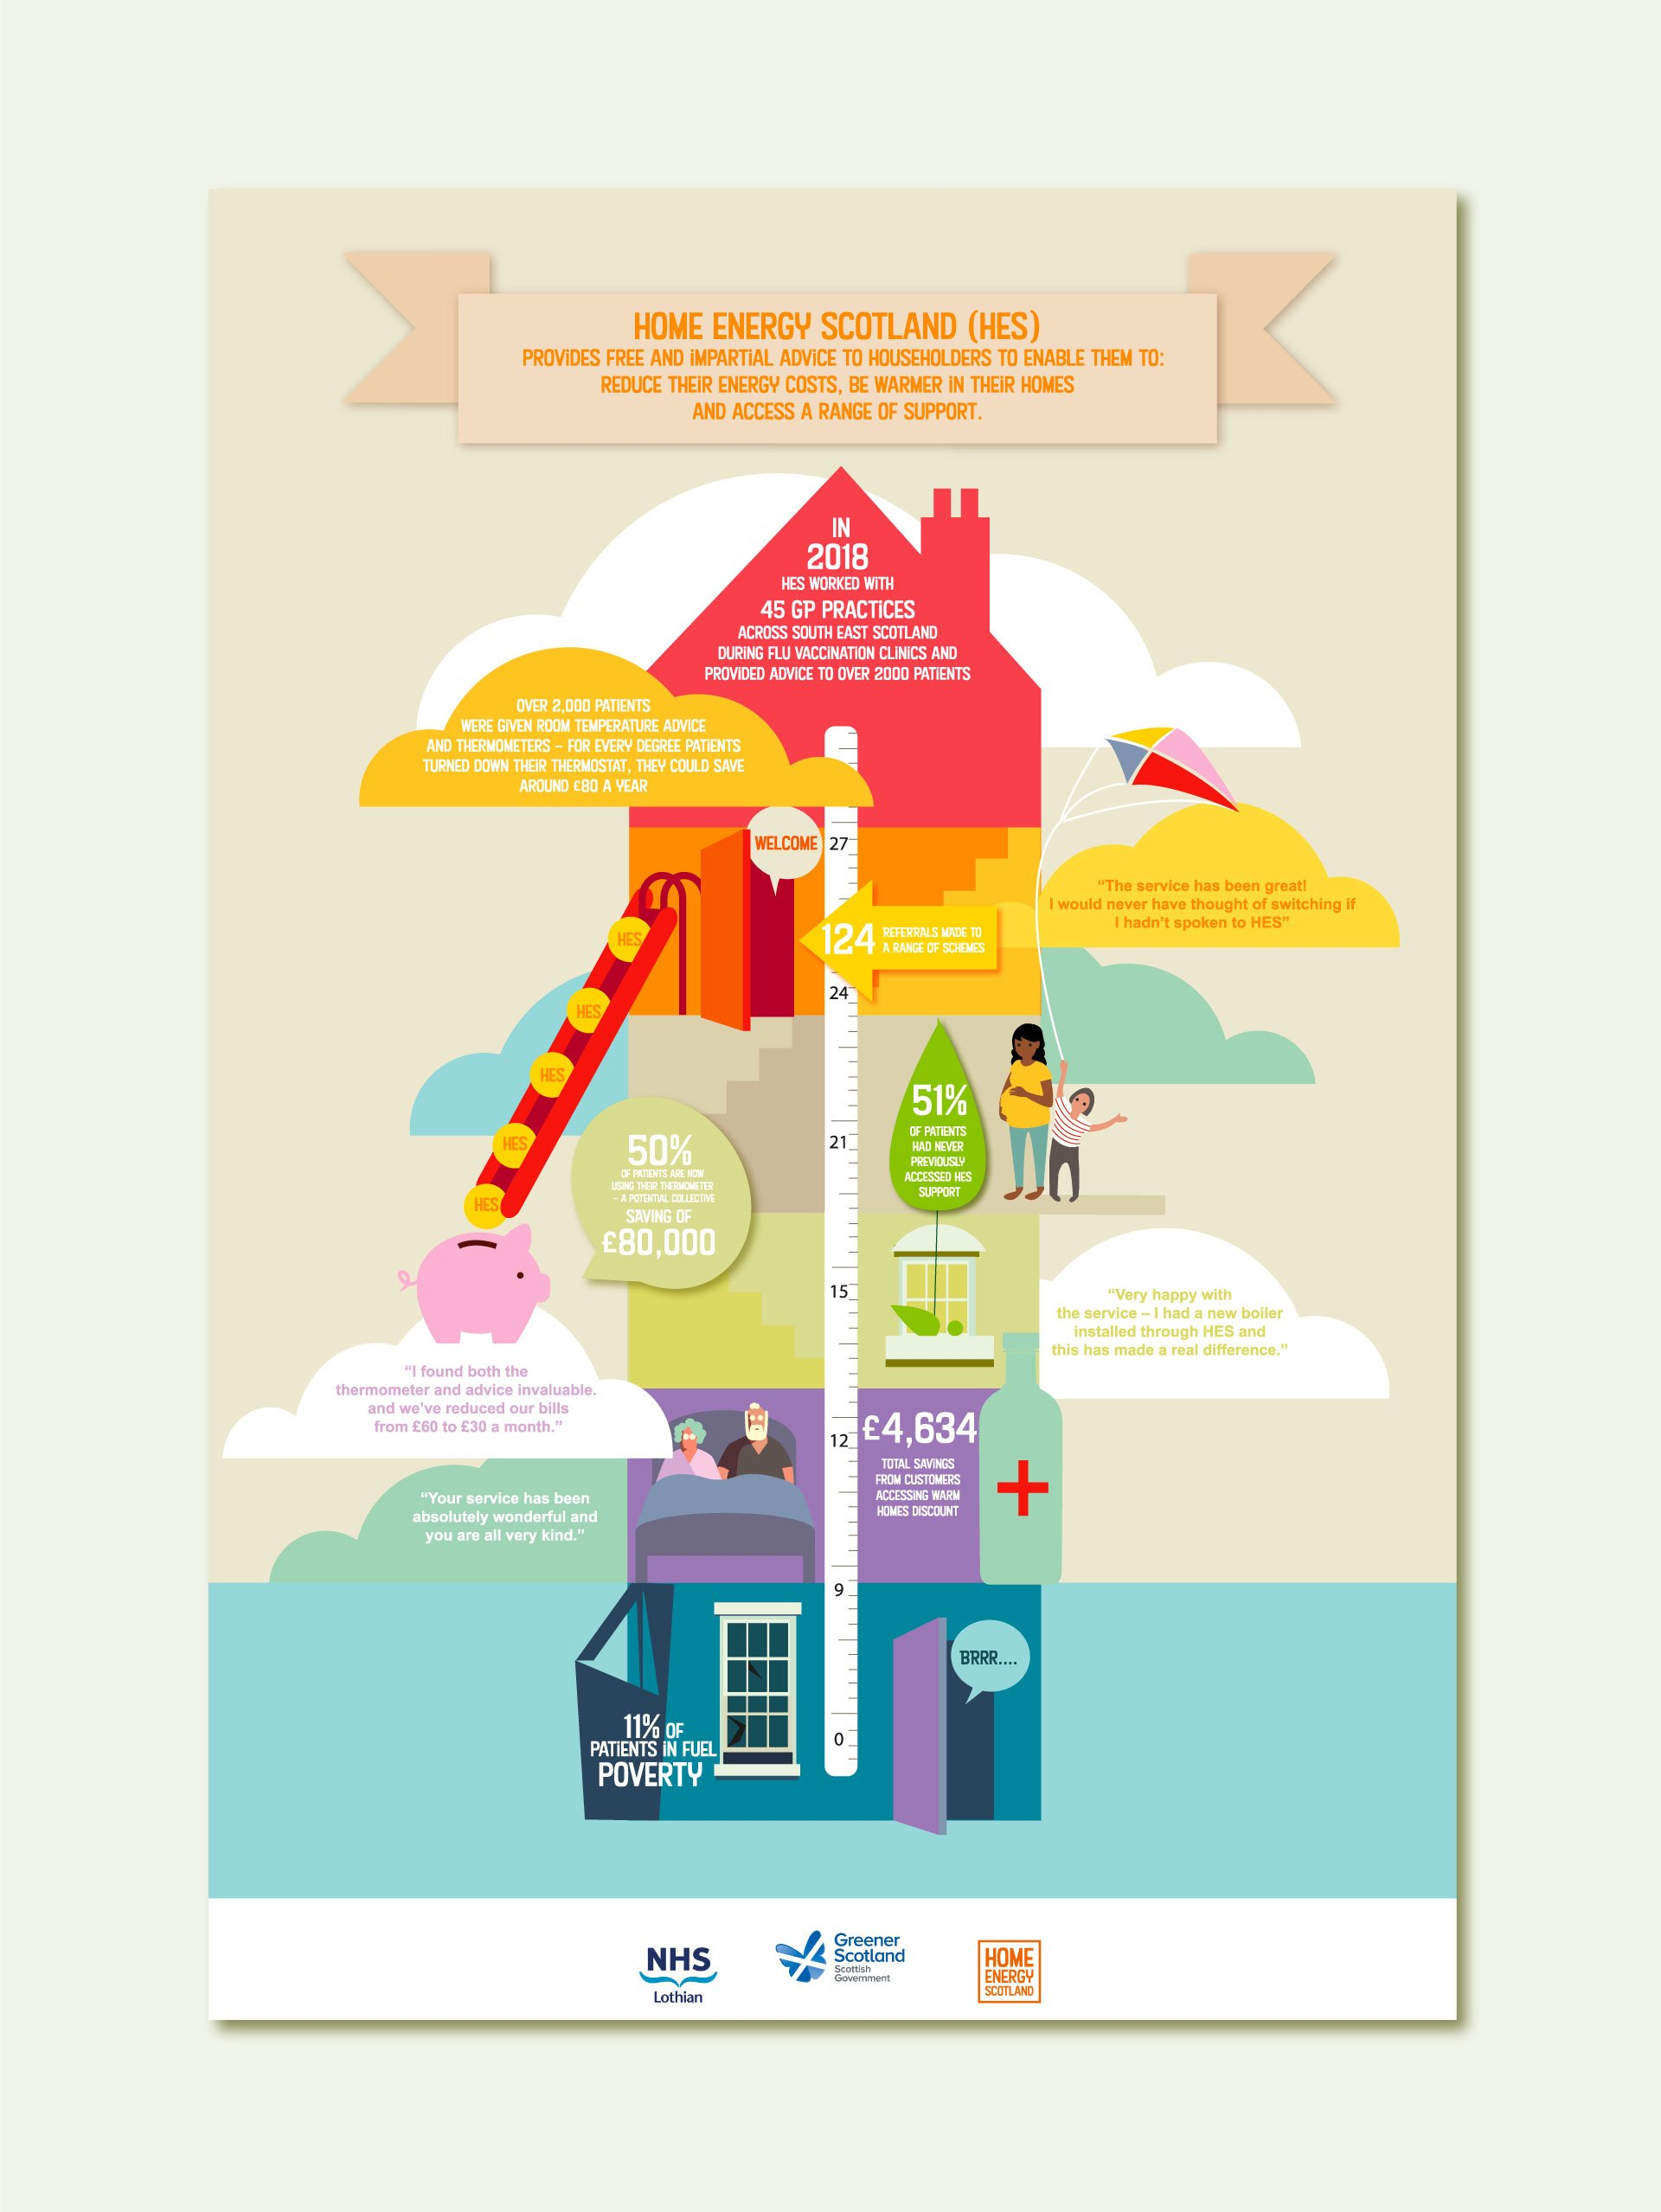 Home Energy Scotland Poster advising on how to reduce their energy costs